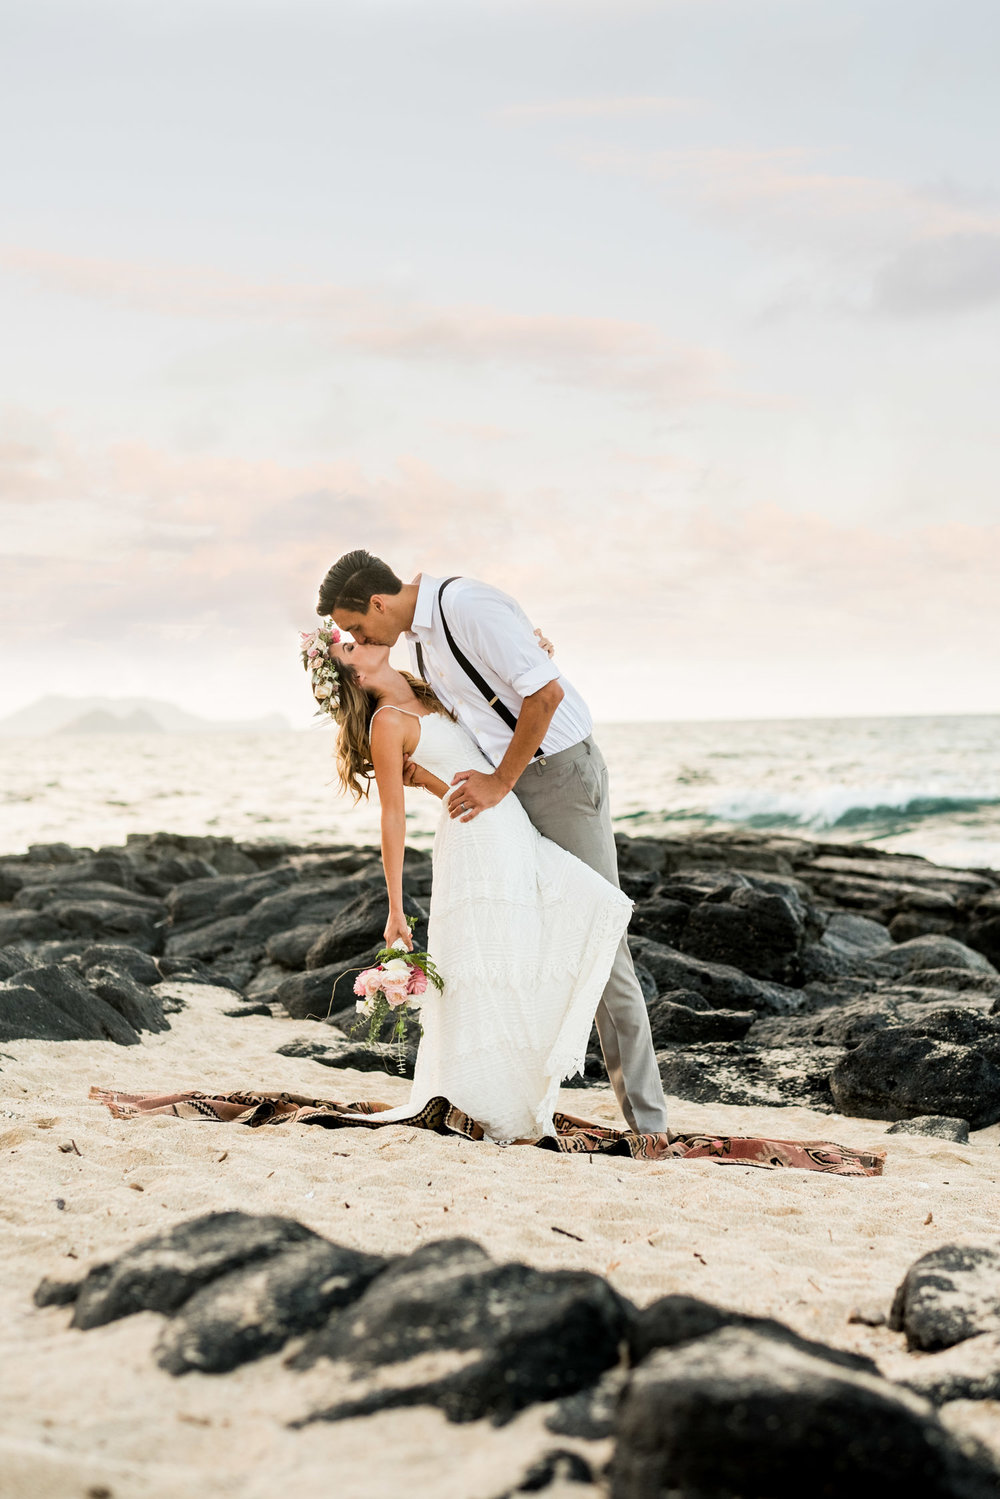 Oahu Elopement at Makapuu Beach with Megan Moura Photography.